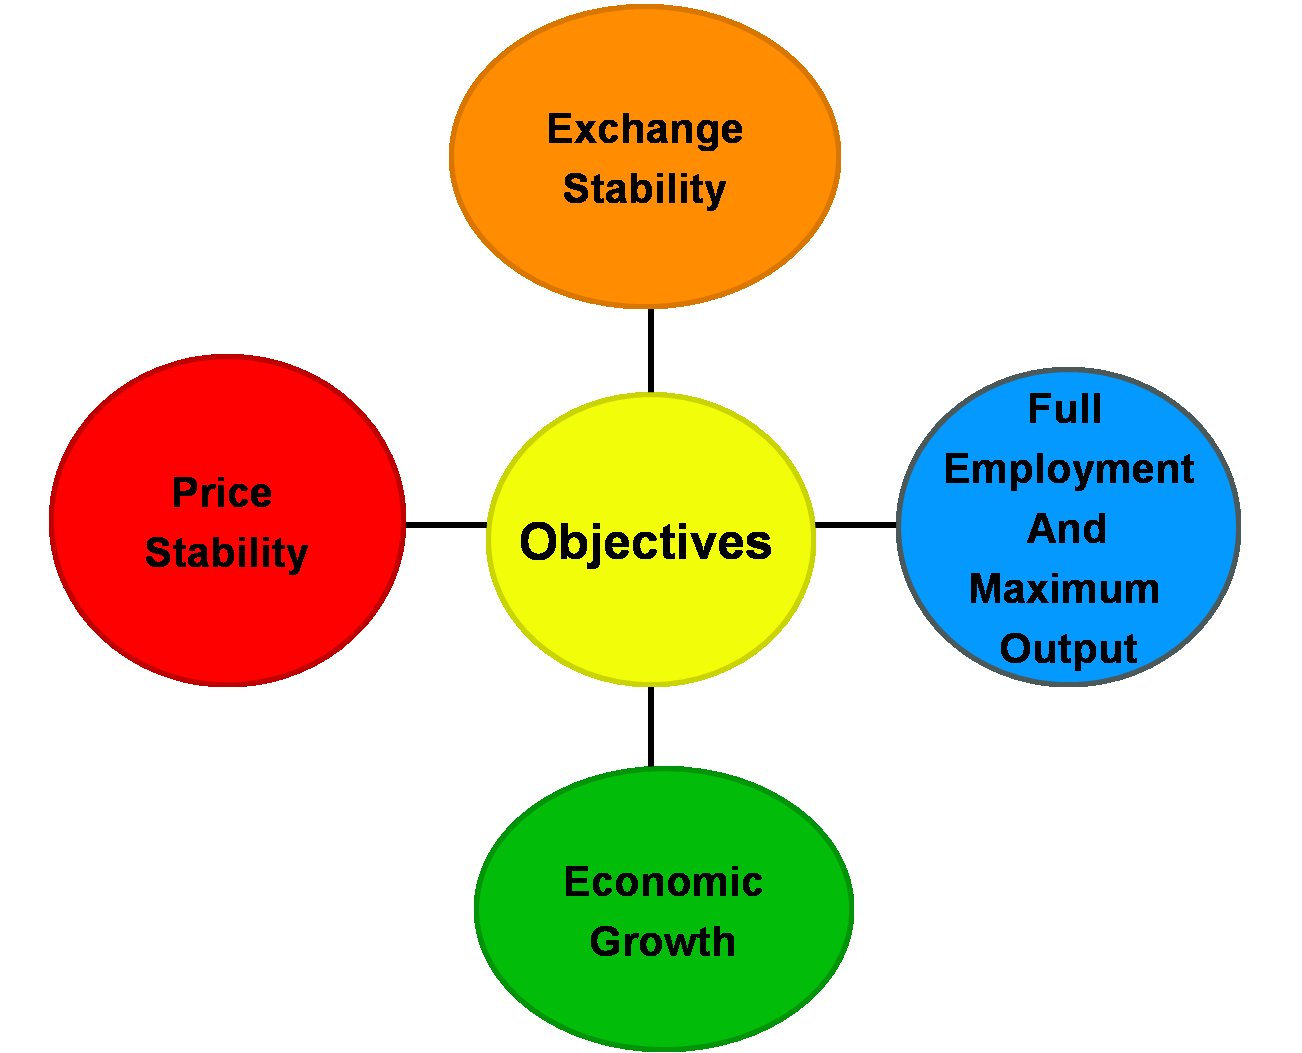 managerial economics assignment help service by economicshelpdesk managerial economics assignment